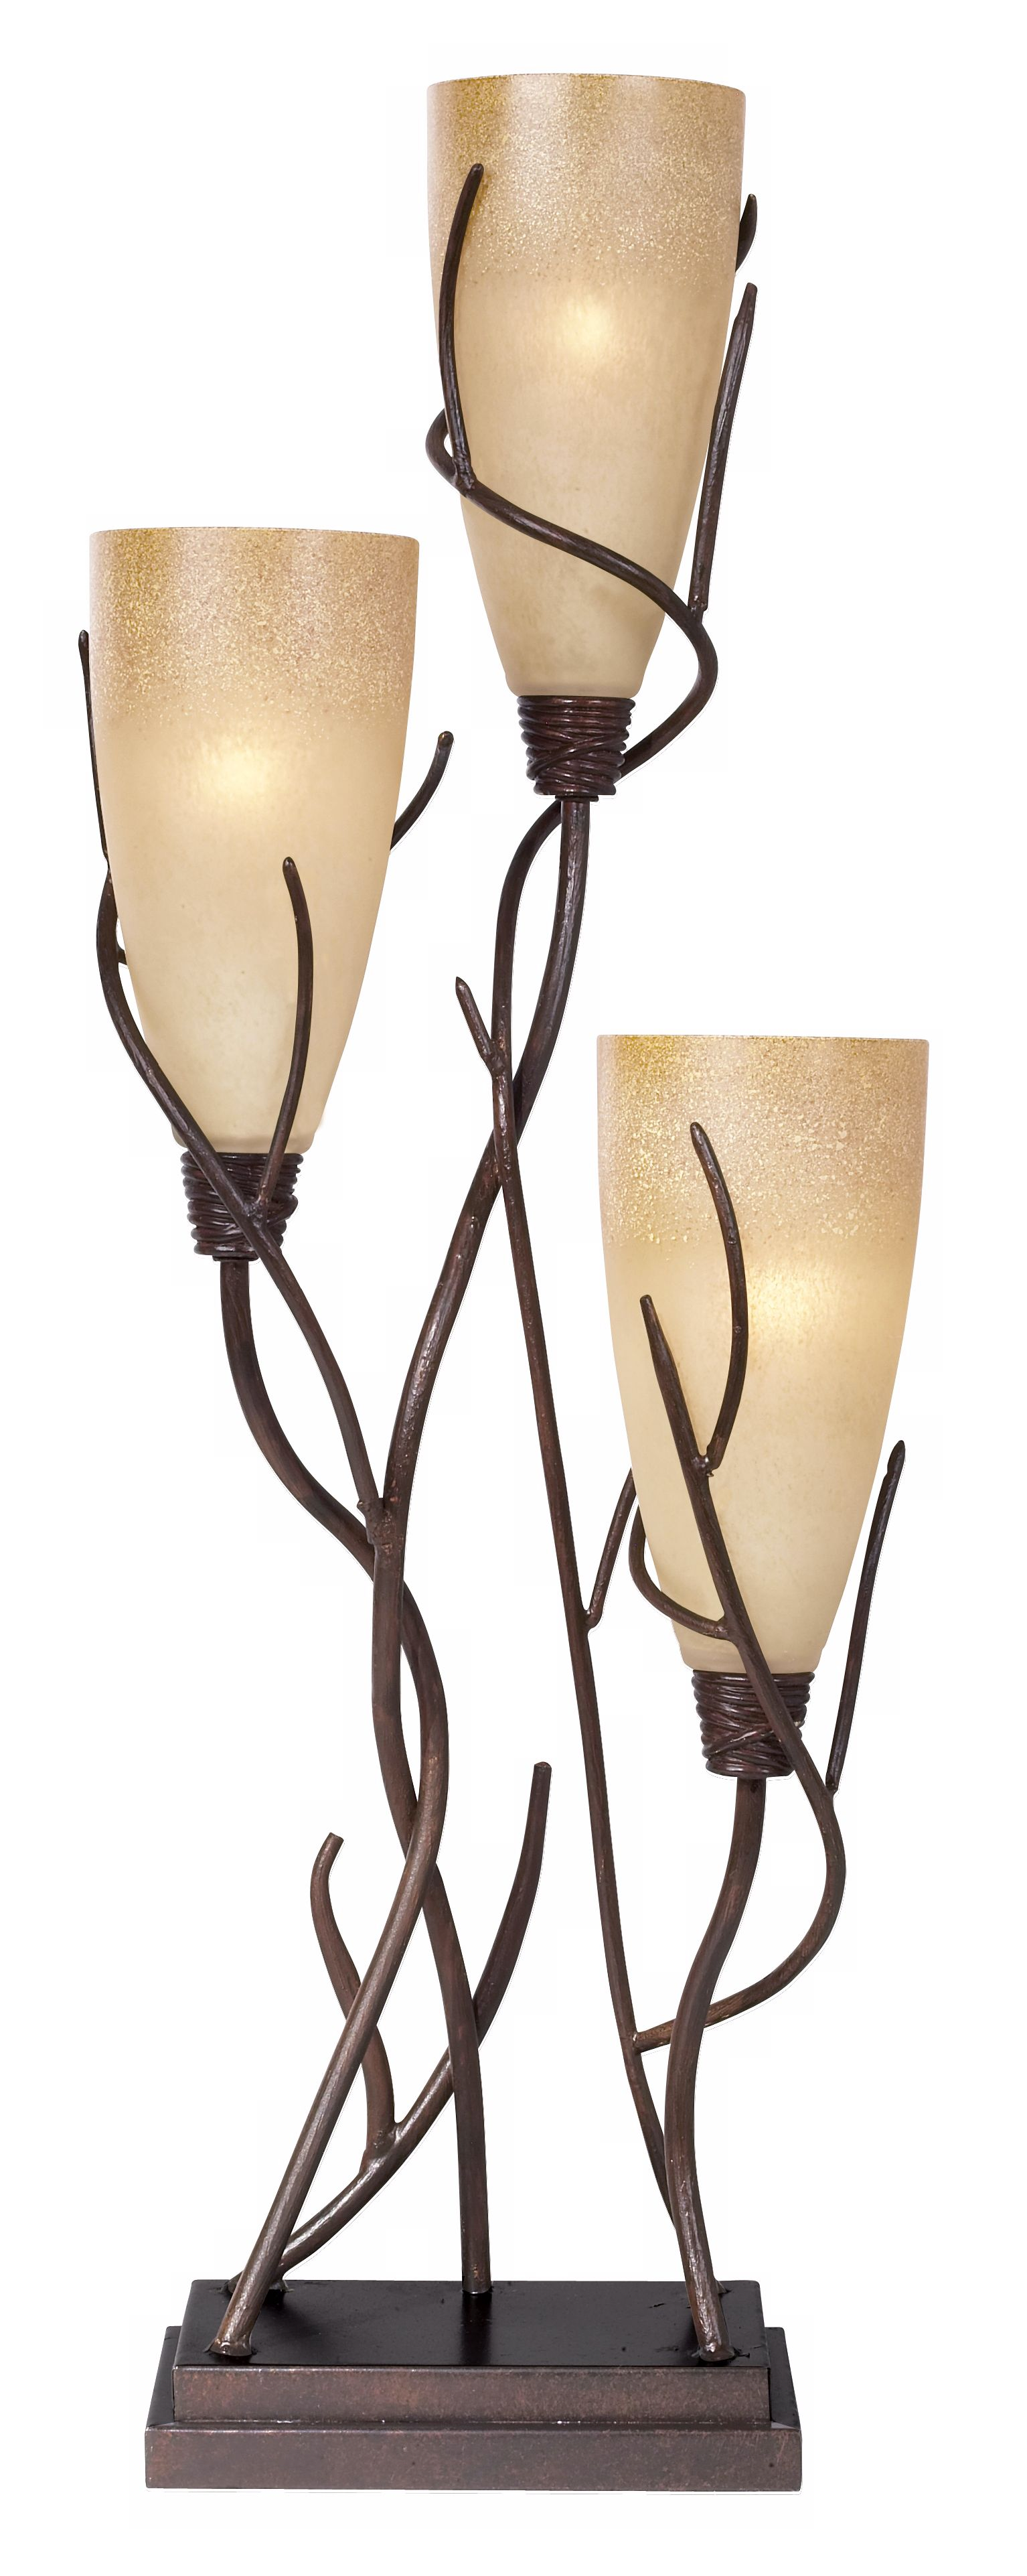 El Dorado 3 Light Uplight Table Lamp